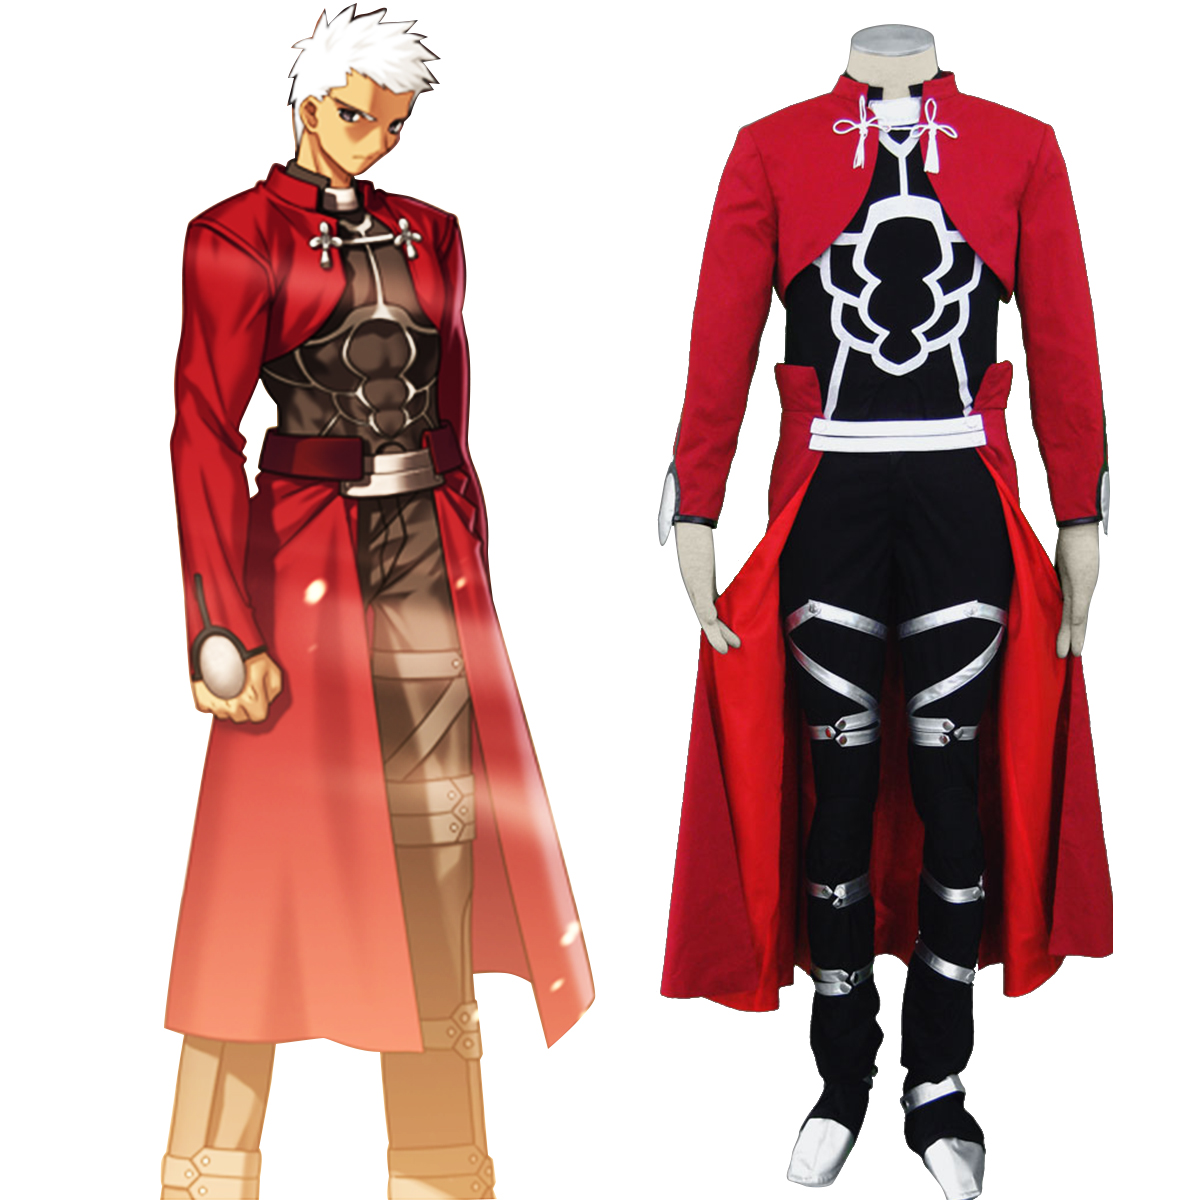 The Holy Grail War Archer Anime Cosplay Costumes Outfit